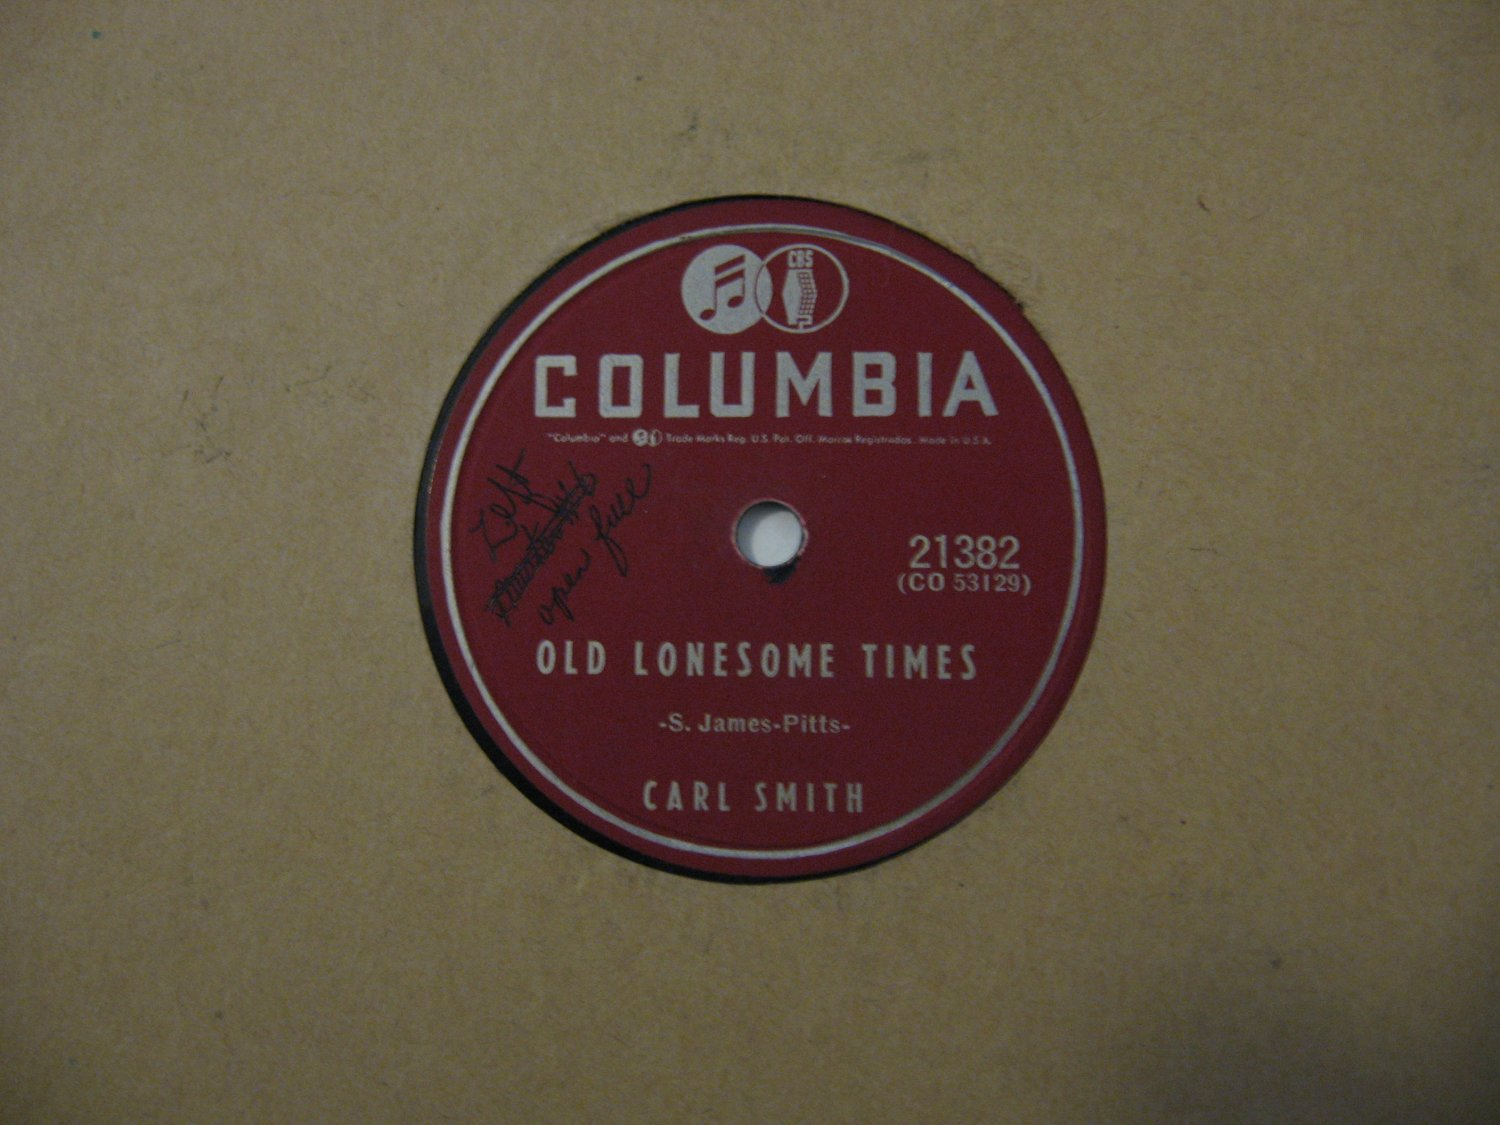 Carl Smith - Old Lonesome Times / There She Goes - 1955 (Vinyl Records)